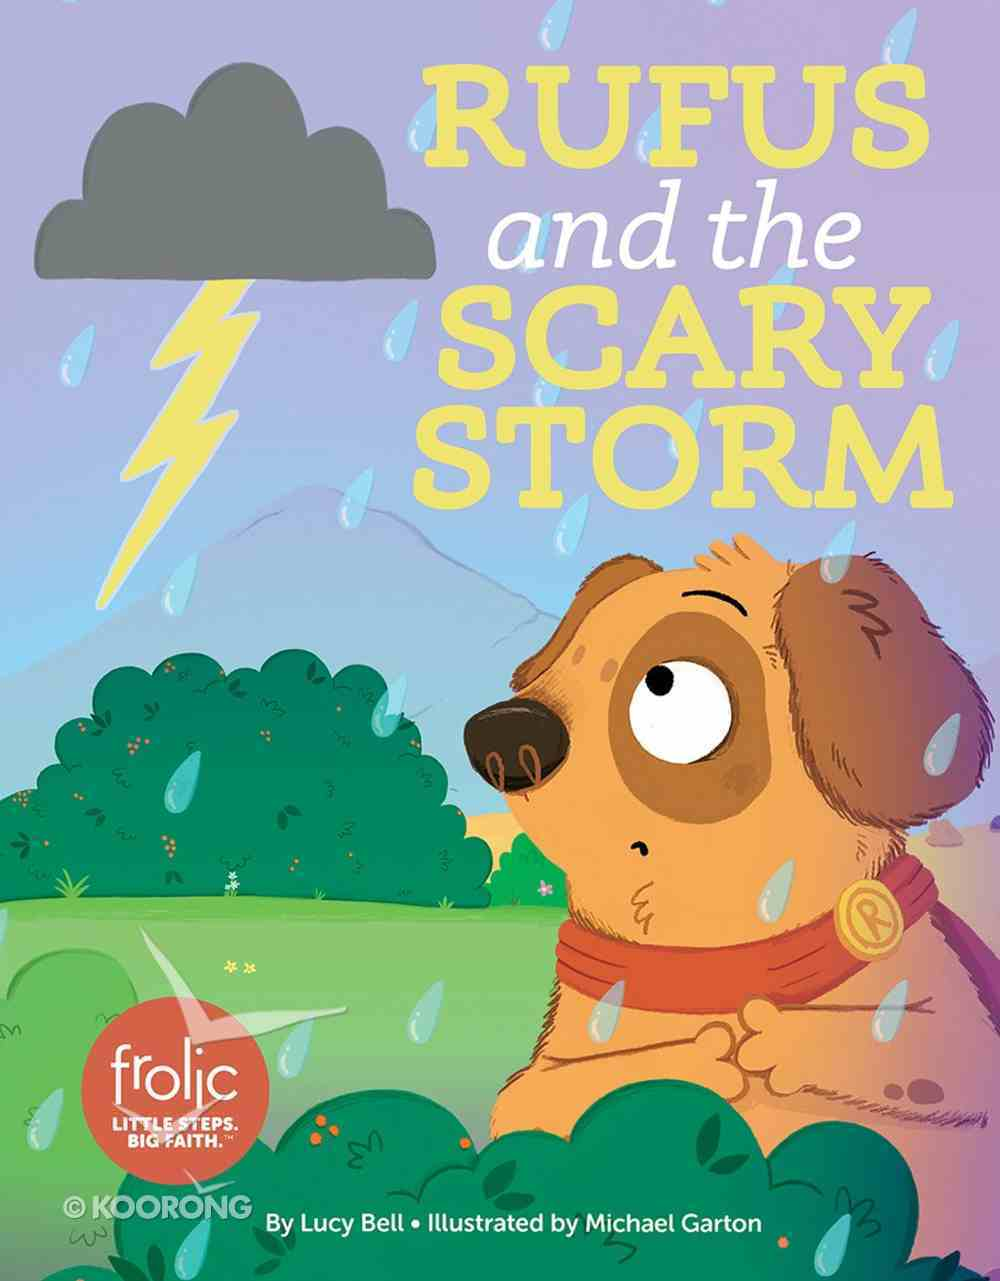 Rufus and the Scary Storm: A Book About Being Brave (Frolic Series) Hardback